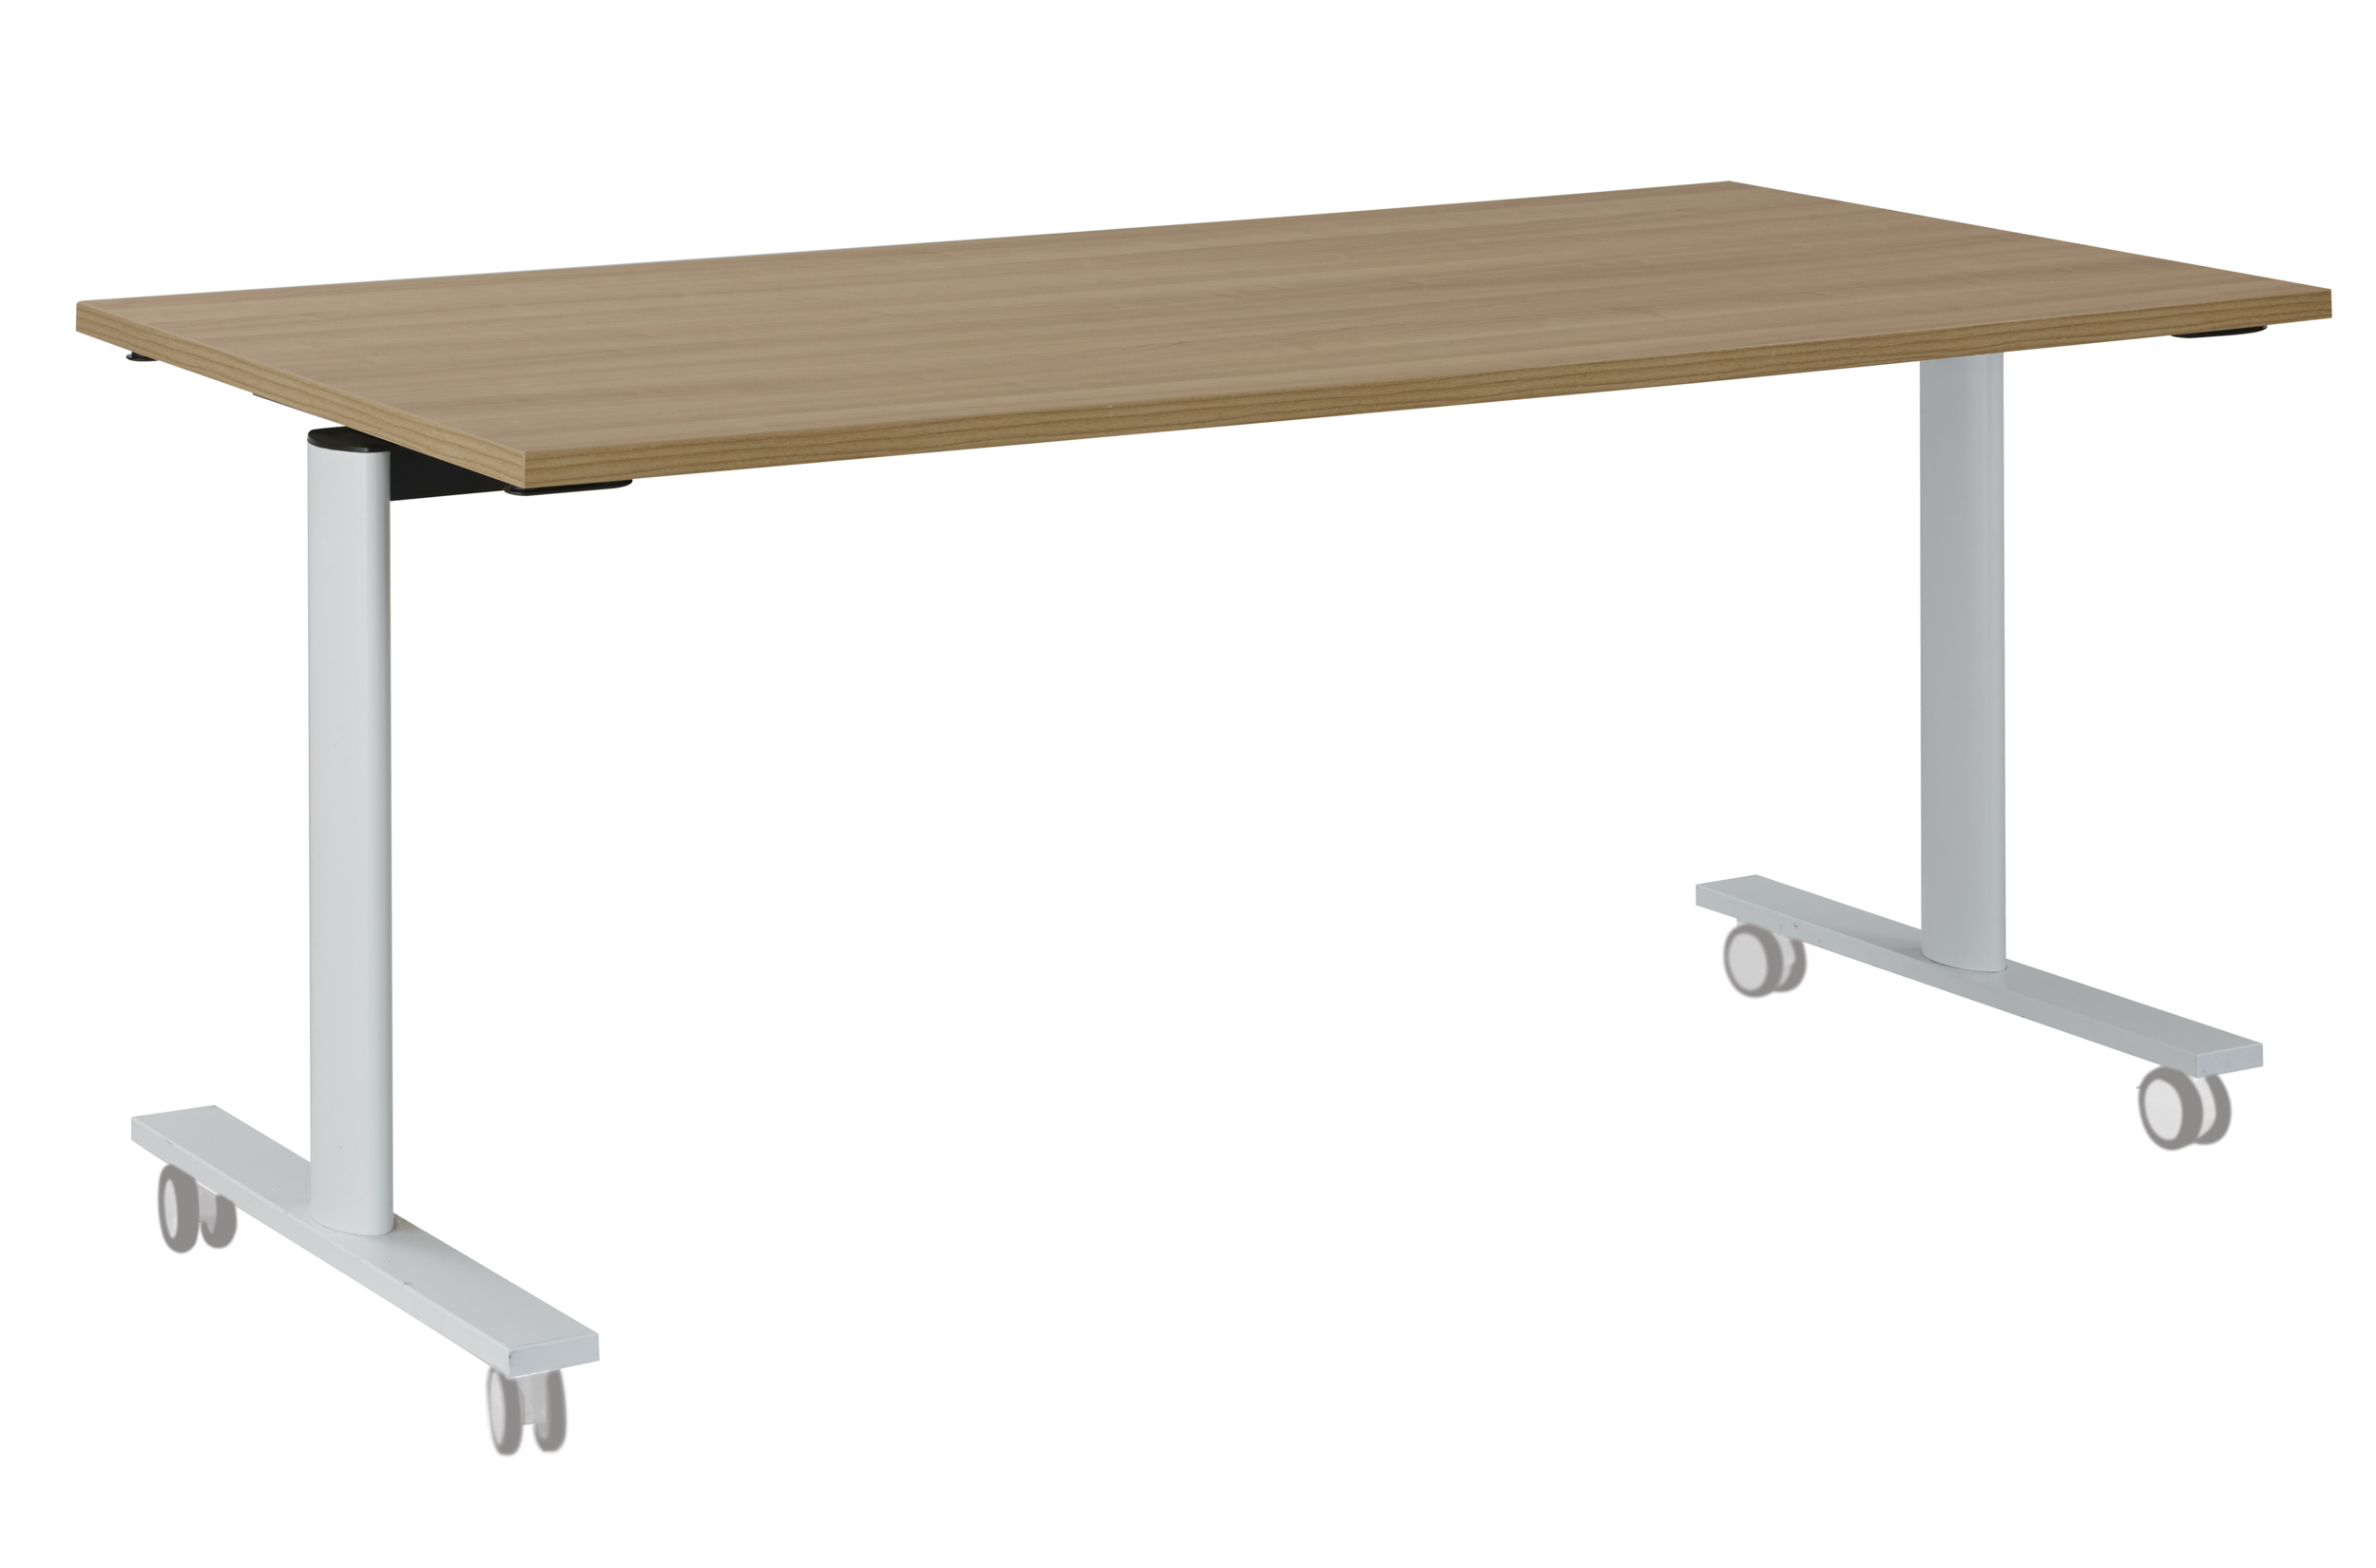 YES MERISIER PIEDS BLANC TABLE MOBILE ET RABATTABLE 180CM